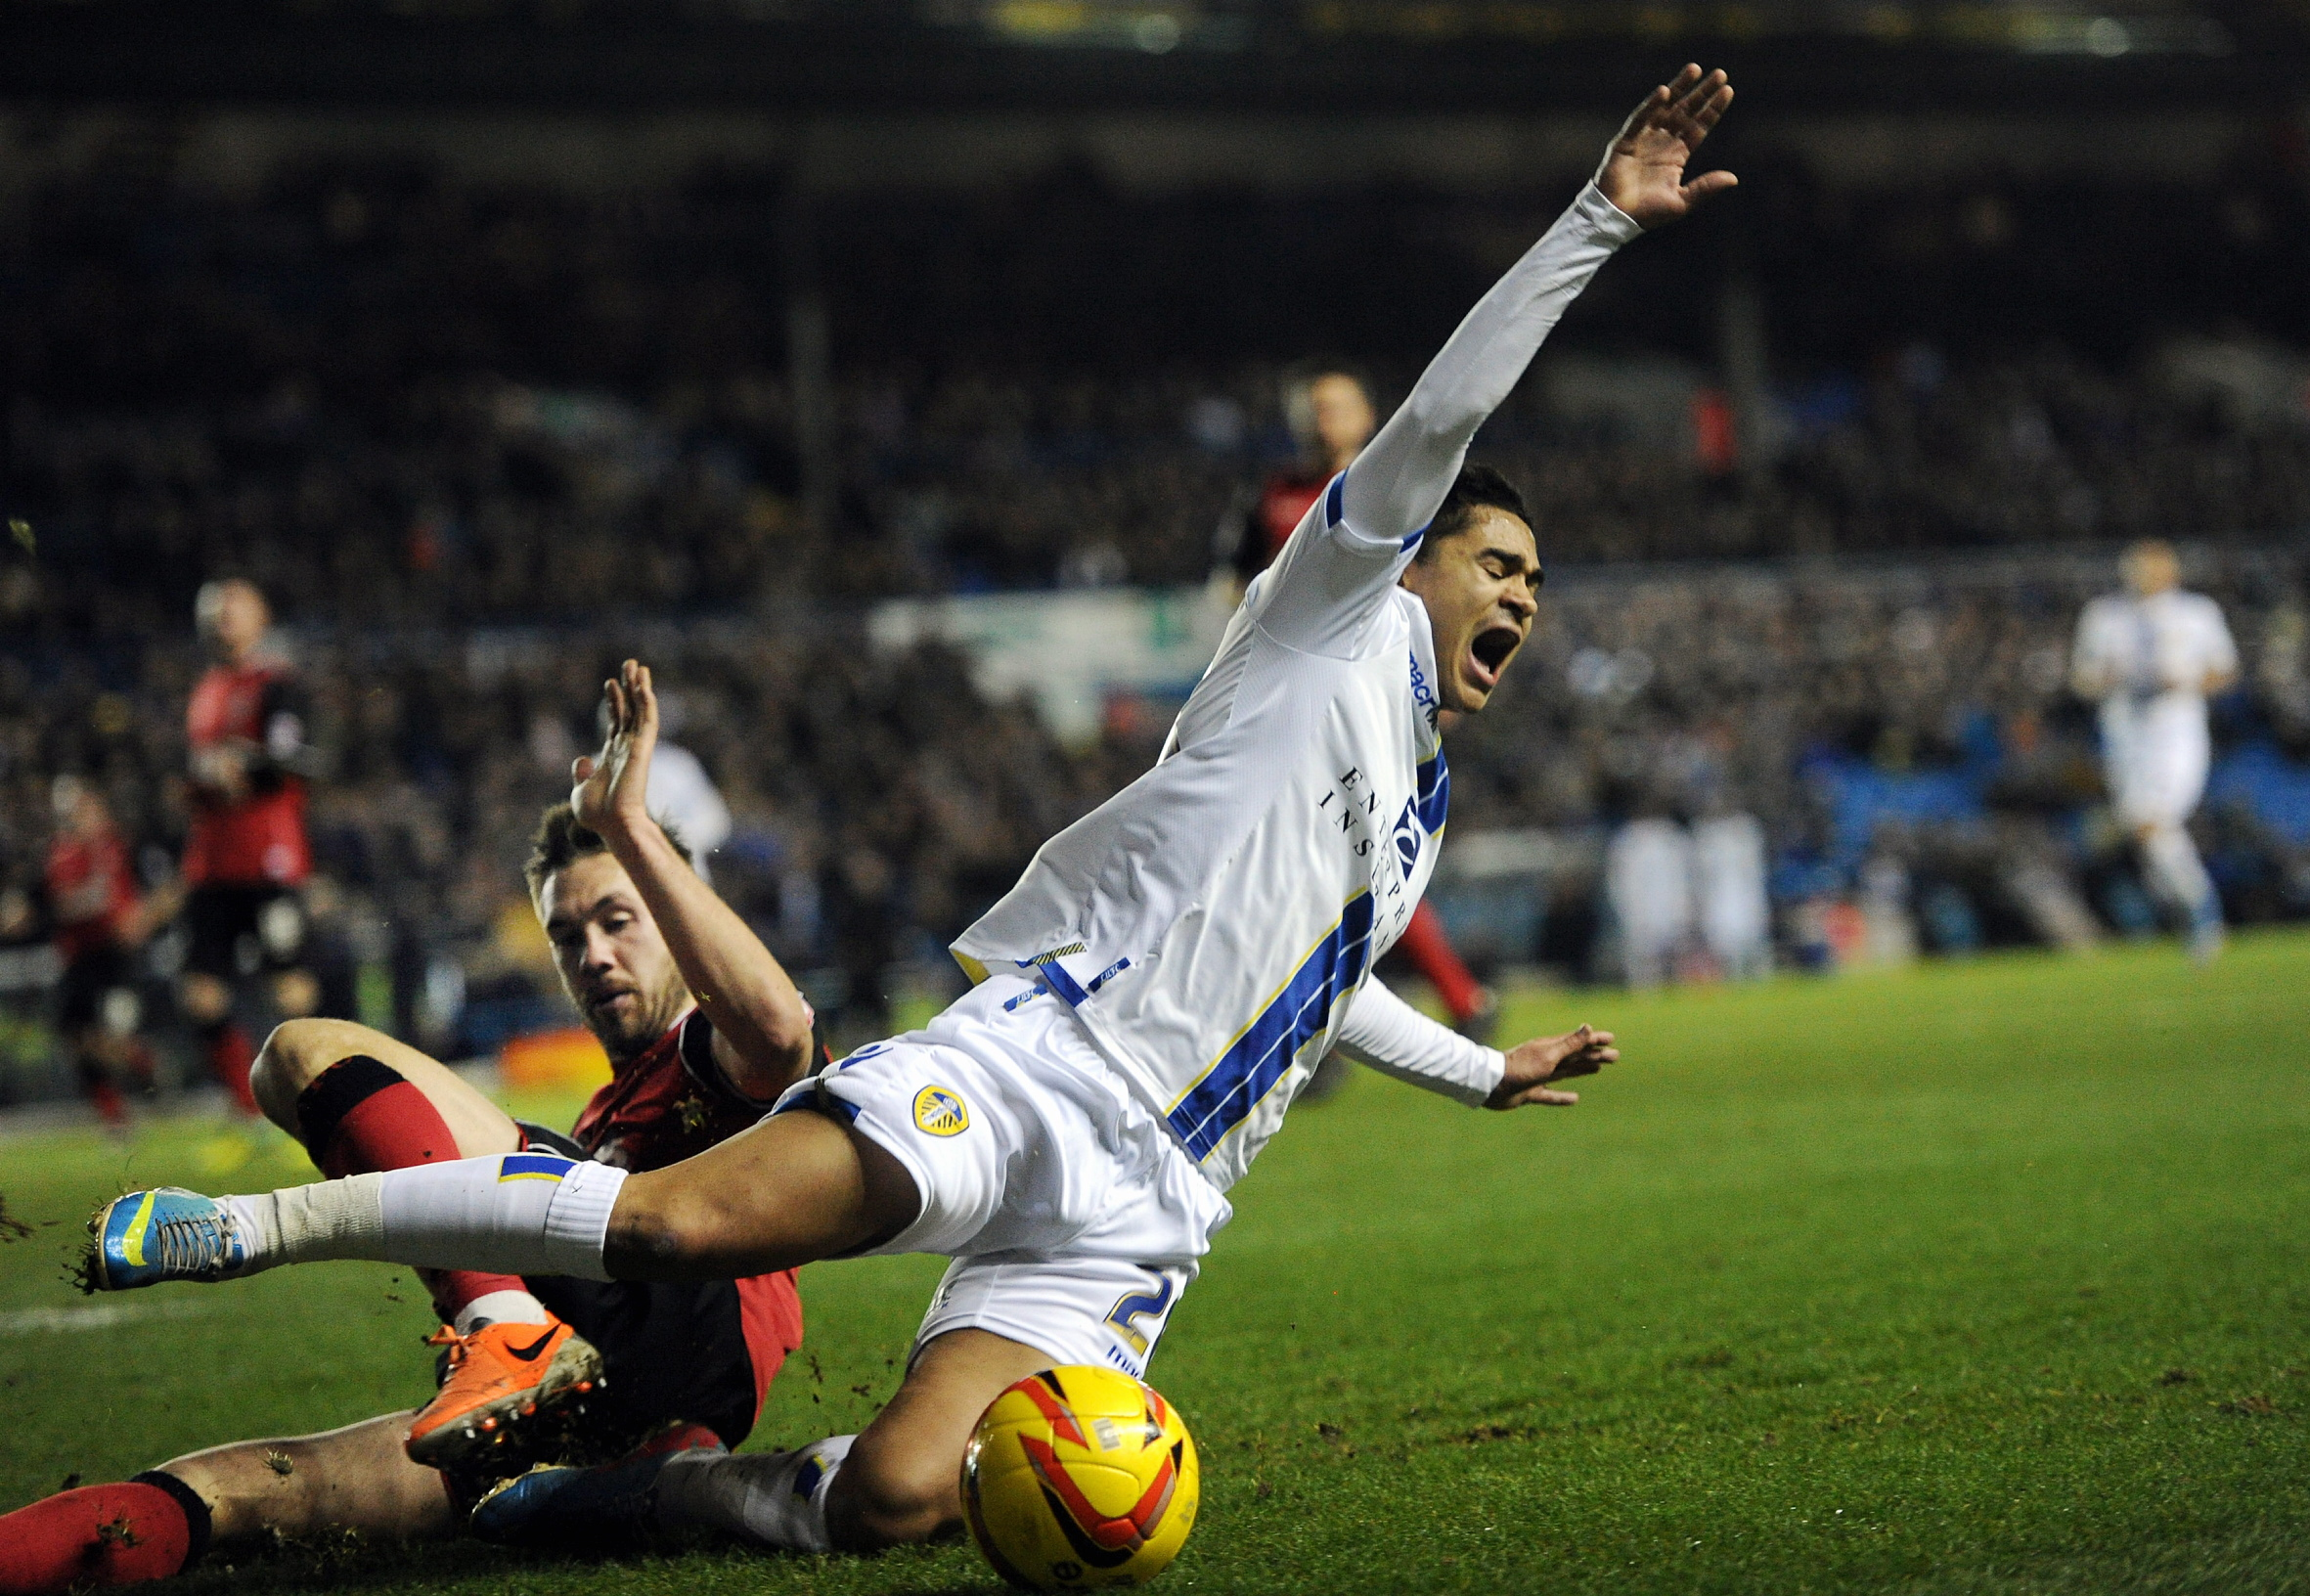 Action from Leeds' 1-1 draw in midweek against Ipswich. The club's struggles on the pitch will not be helped by news the proposed takeover by Sport Capita